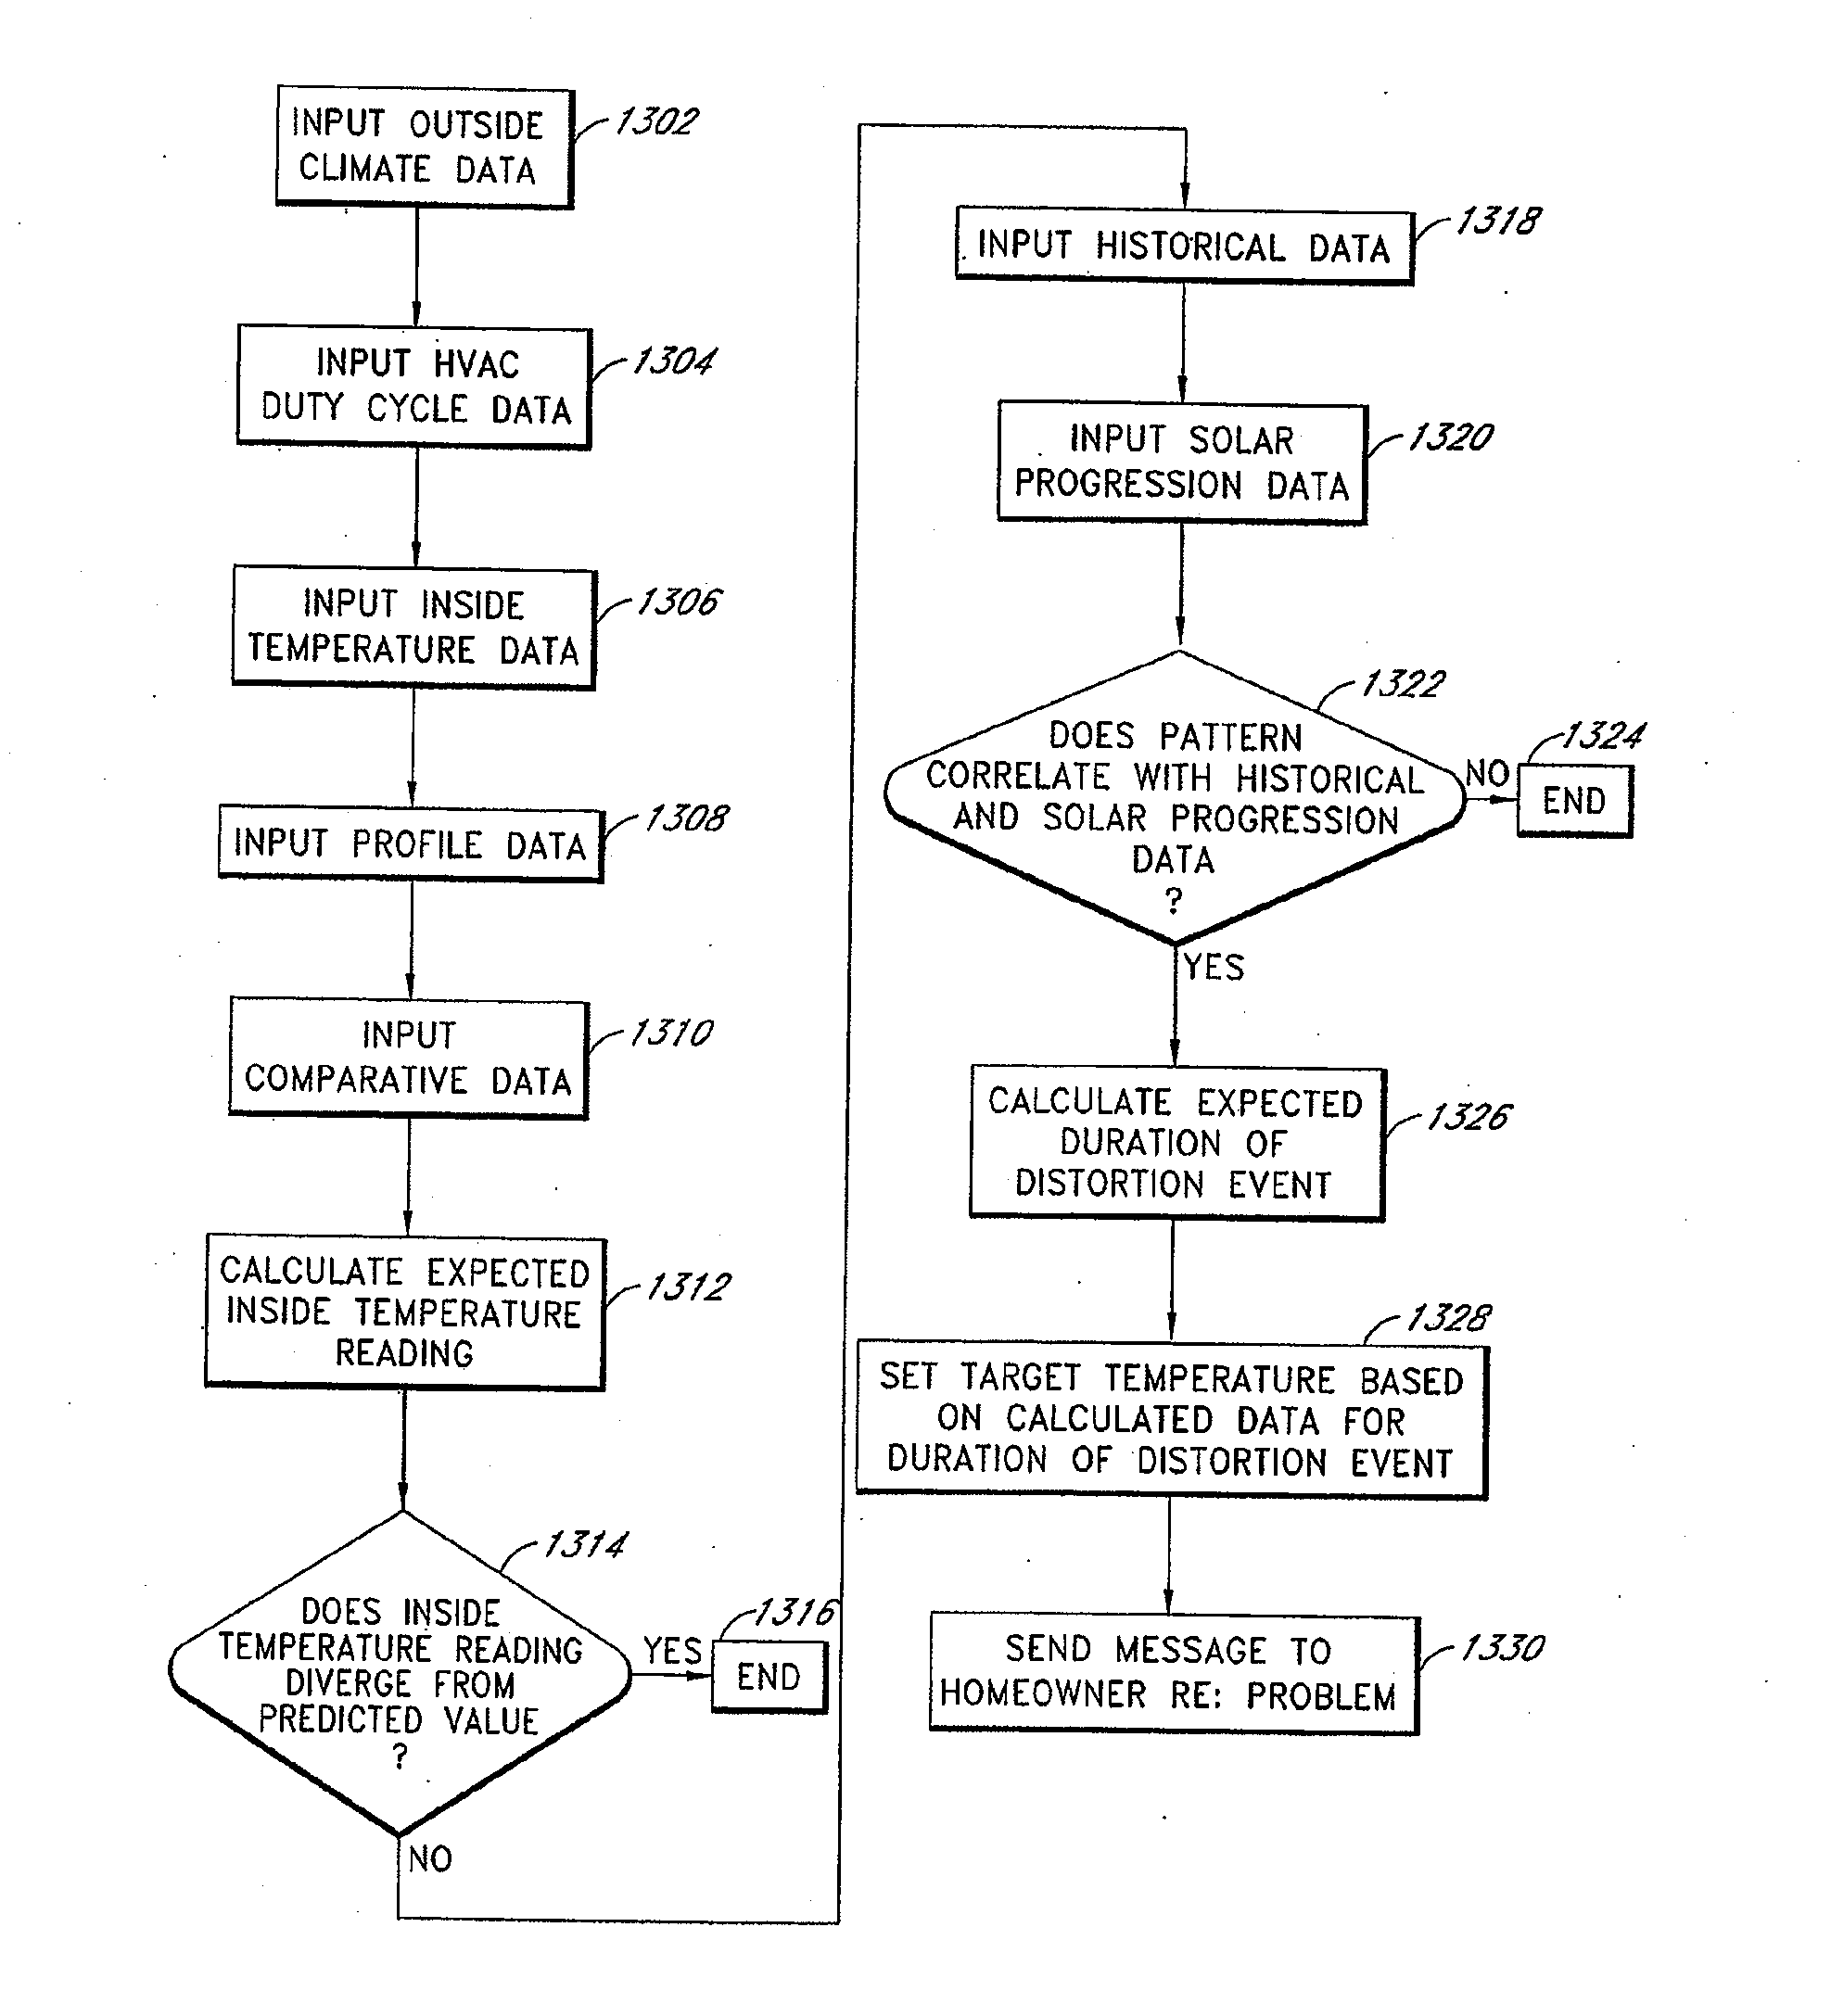 Tremendous Patent Us20120158350 System And Method For Calculating The Thermal Wiring Cloud Rineaidewilluminateatxorg